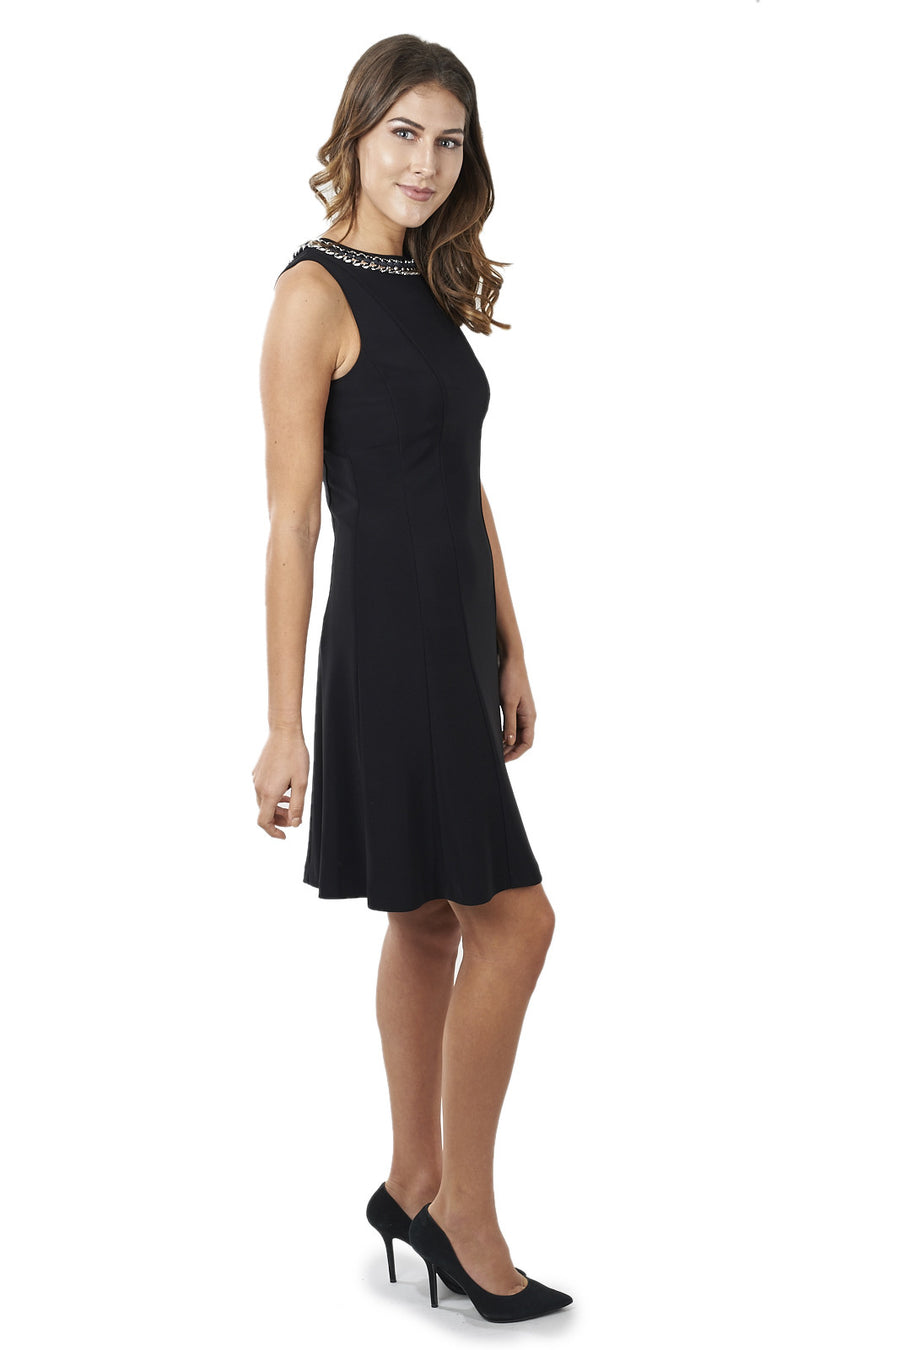 A-line Dress with Woven Chain Accent on Neckline